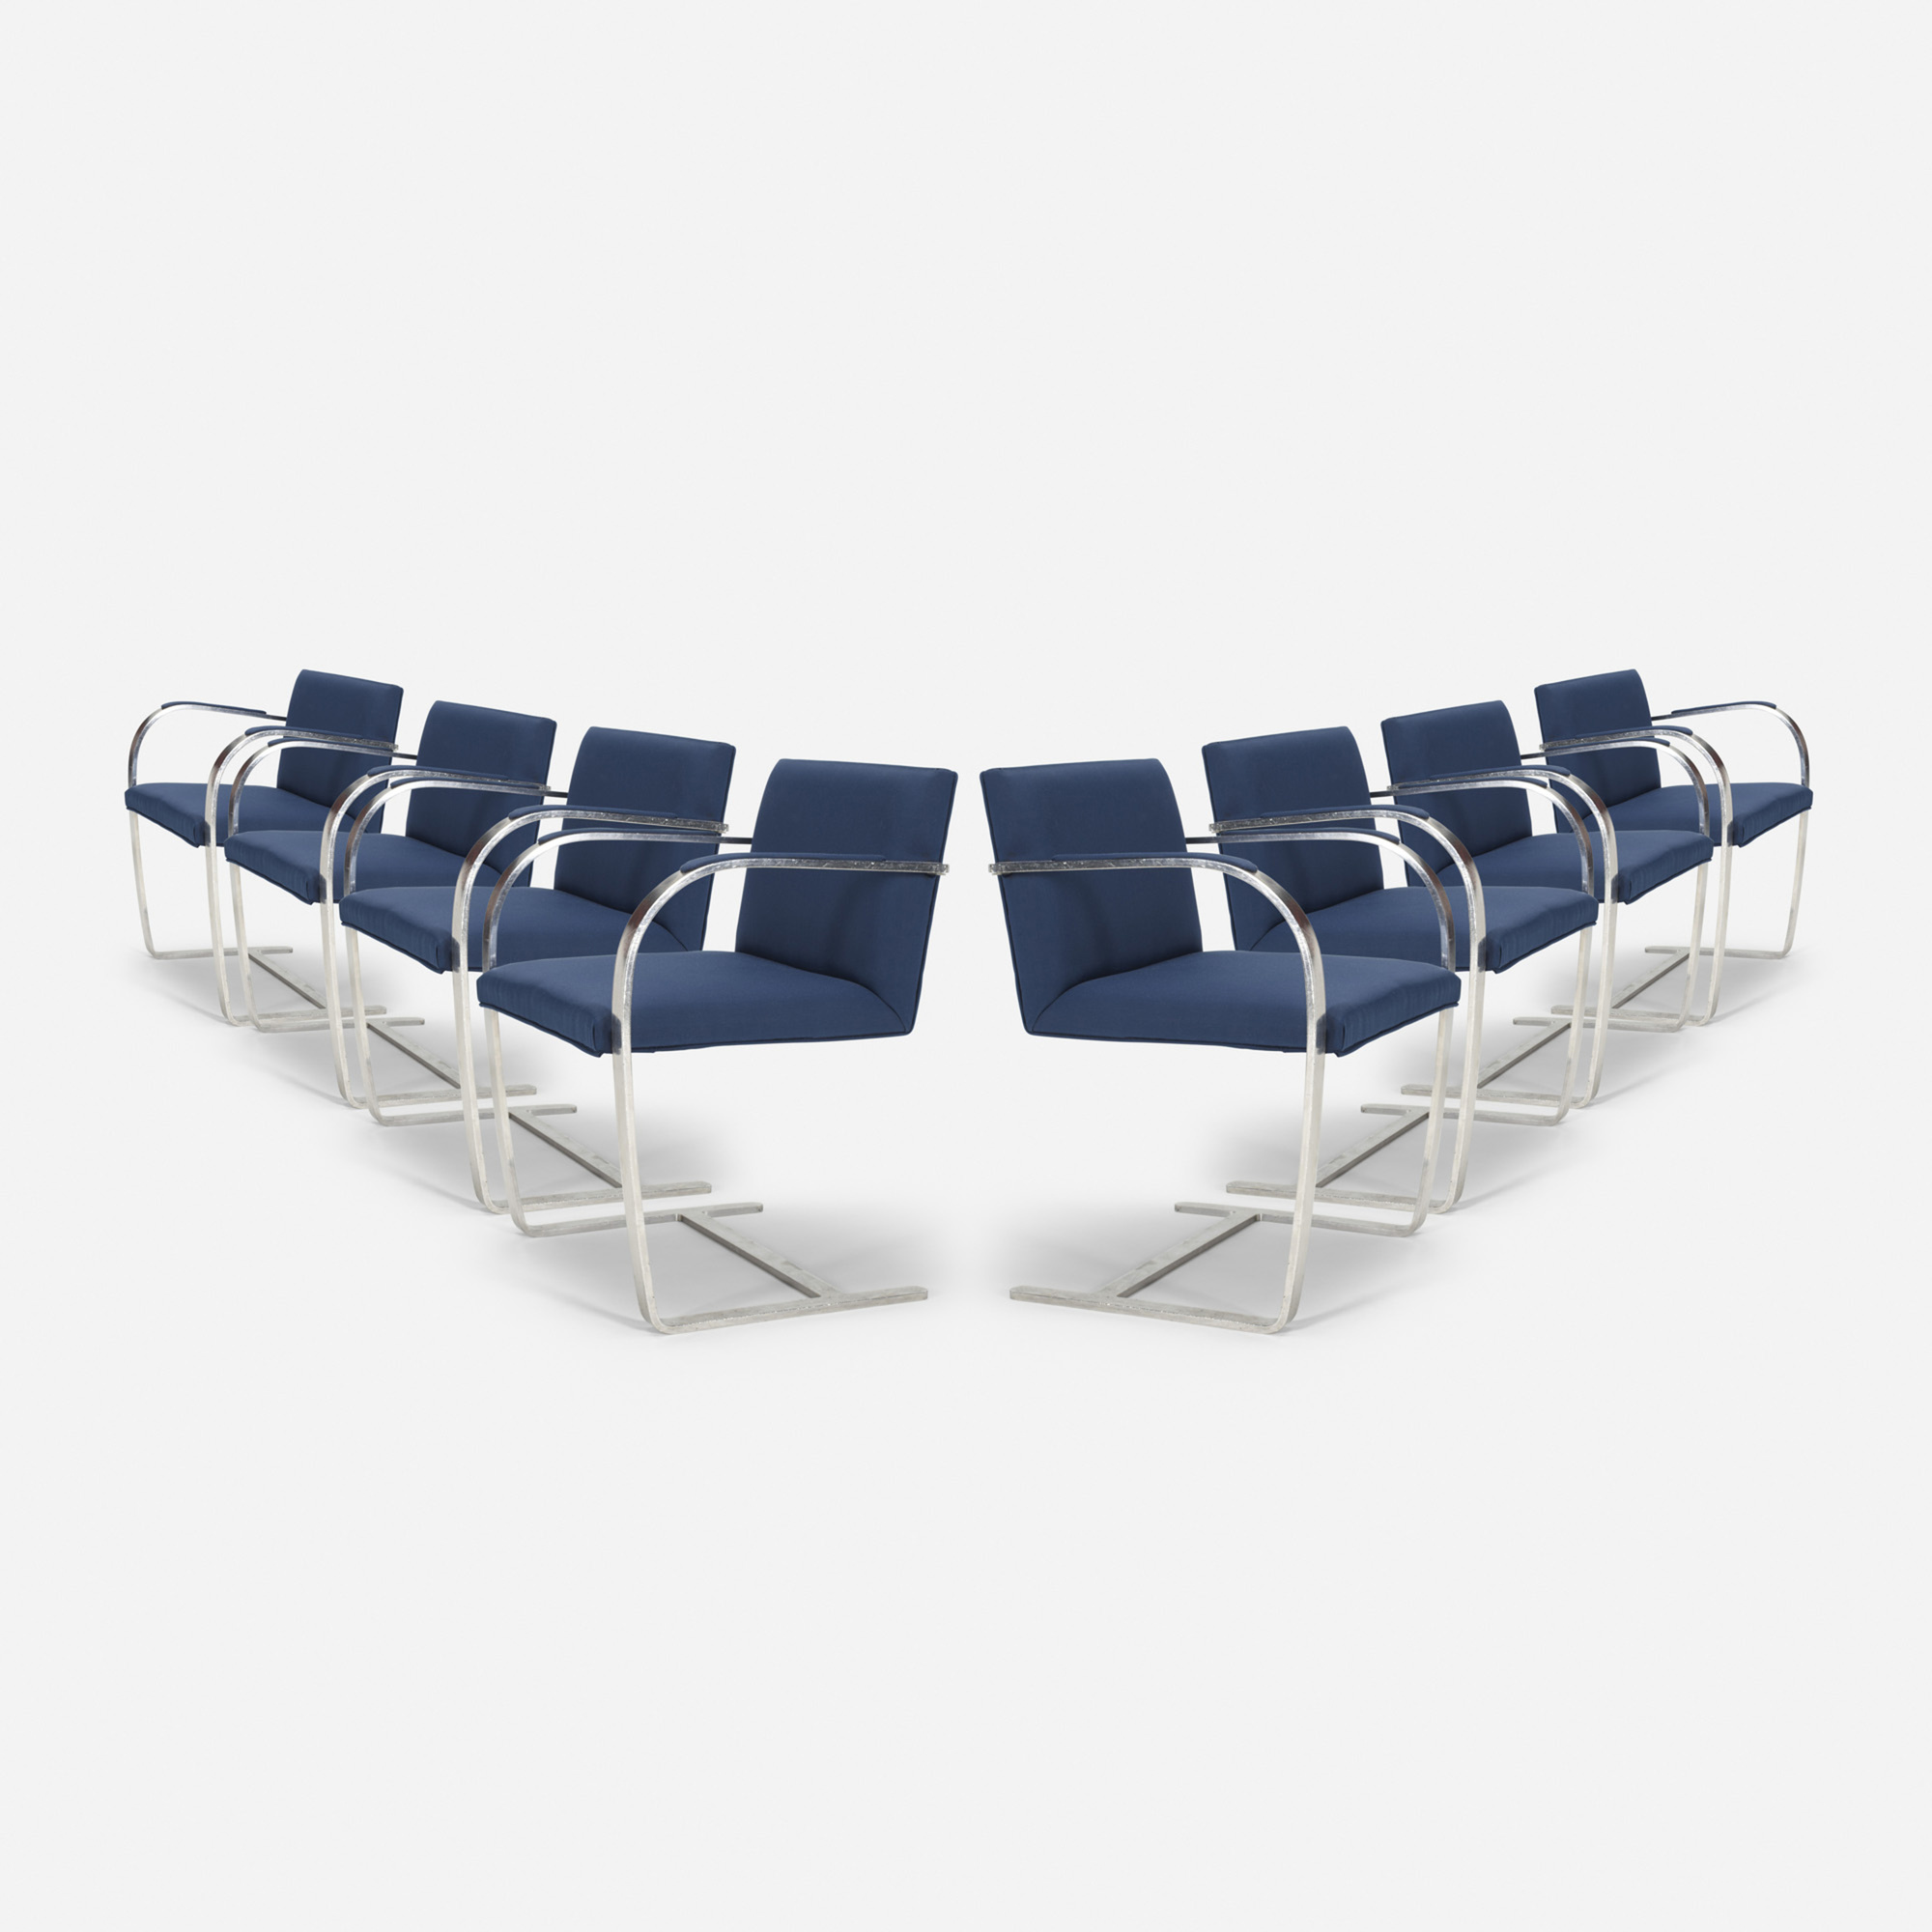 701: Ludwig Mies van der Rohe / Brno chairs from The Four Seasons, set of eight (1 of 1)